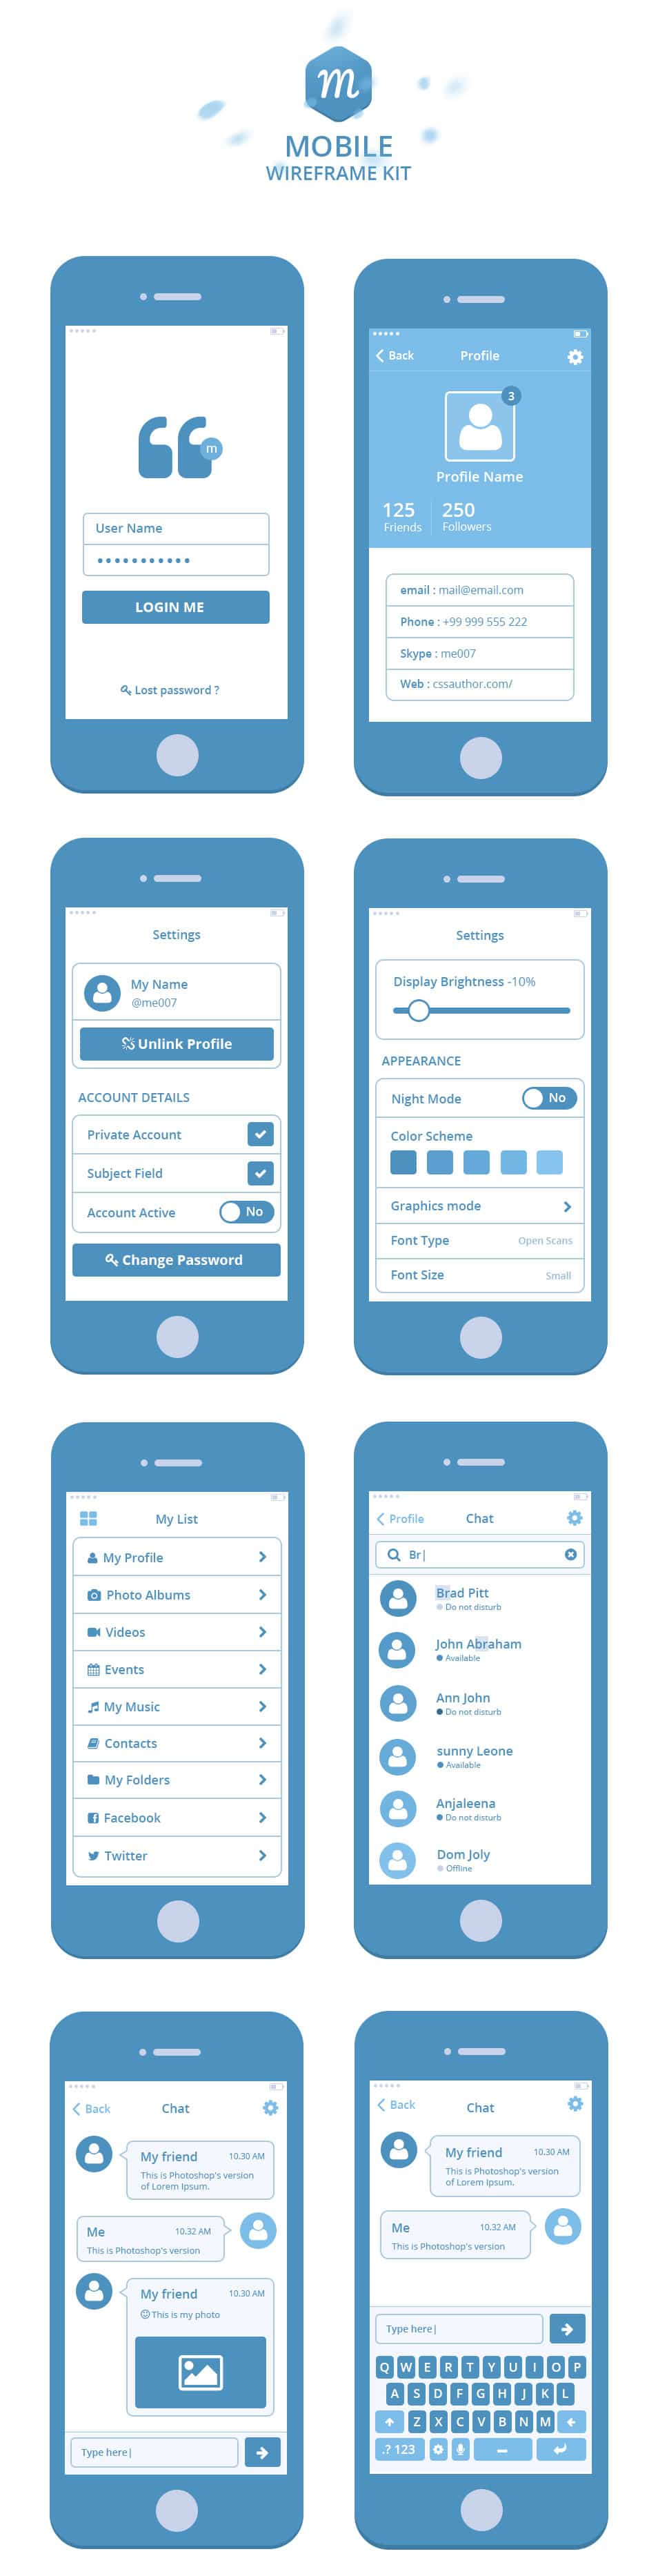 Mobile Wireframe Kit PSD